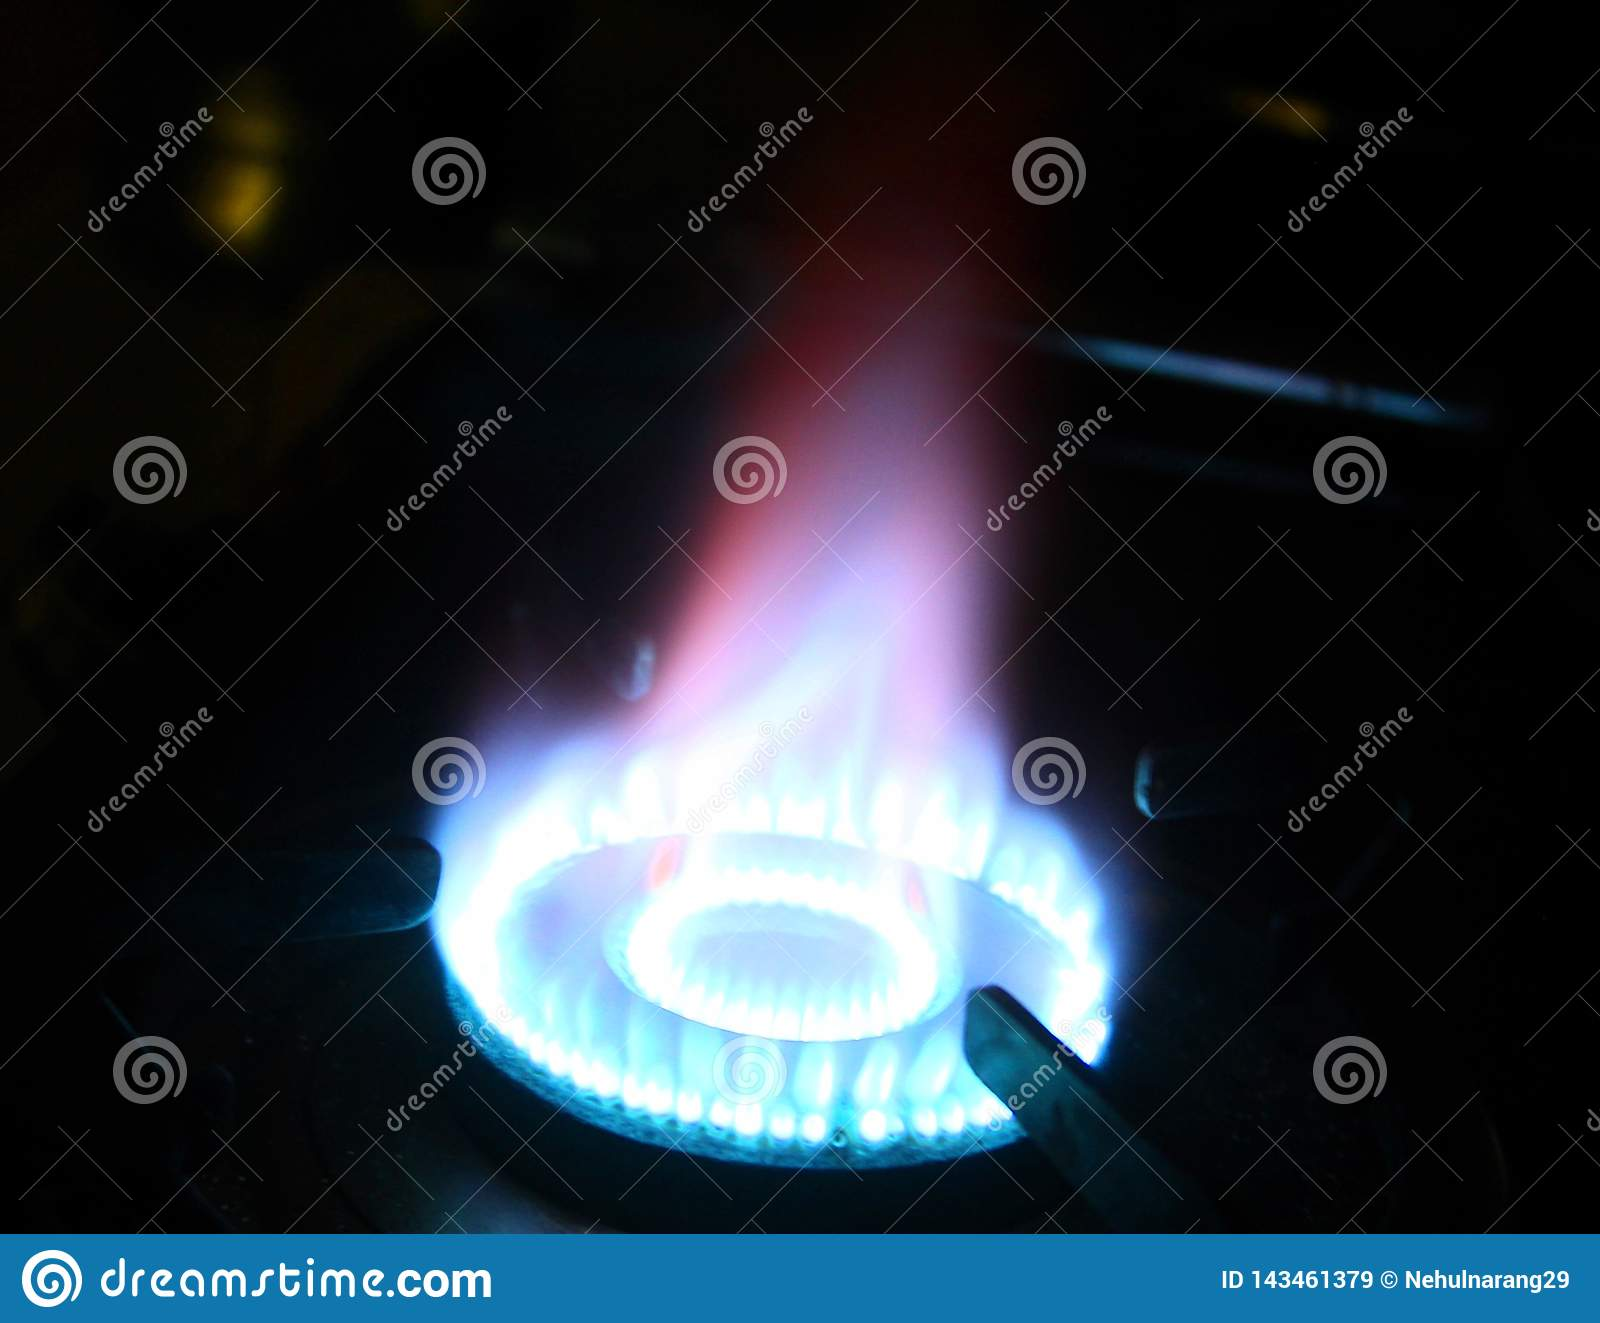 Flames on a gas stove in dark